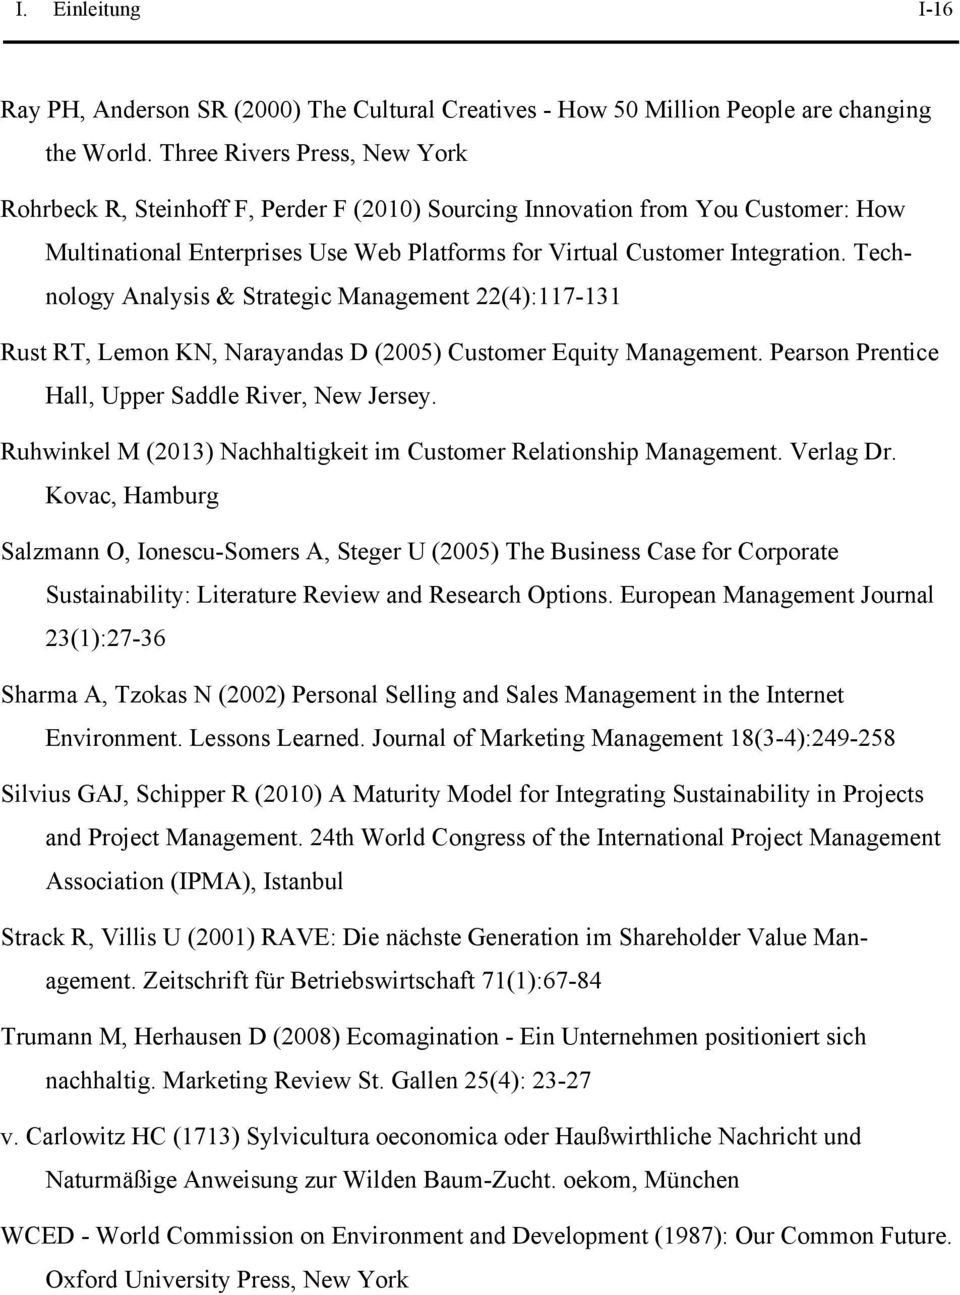 Technology Analysis & Strategic Management 22(4):117-131 Rust RT, Lemon KN, Narayandas D (2005) Customer Equity Management. Pearson Prentice Hall, Upper Saddle River, New Jersey.